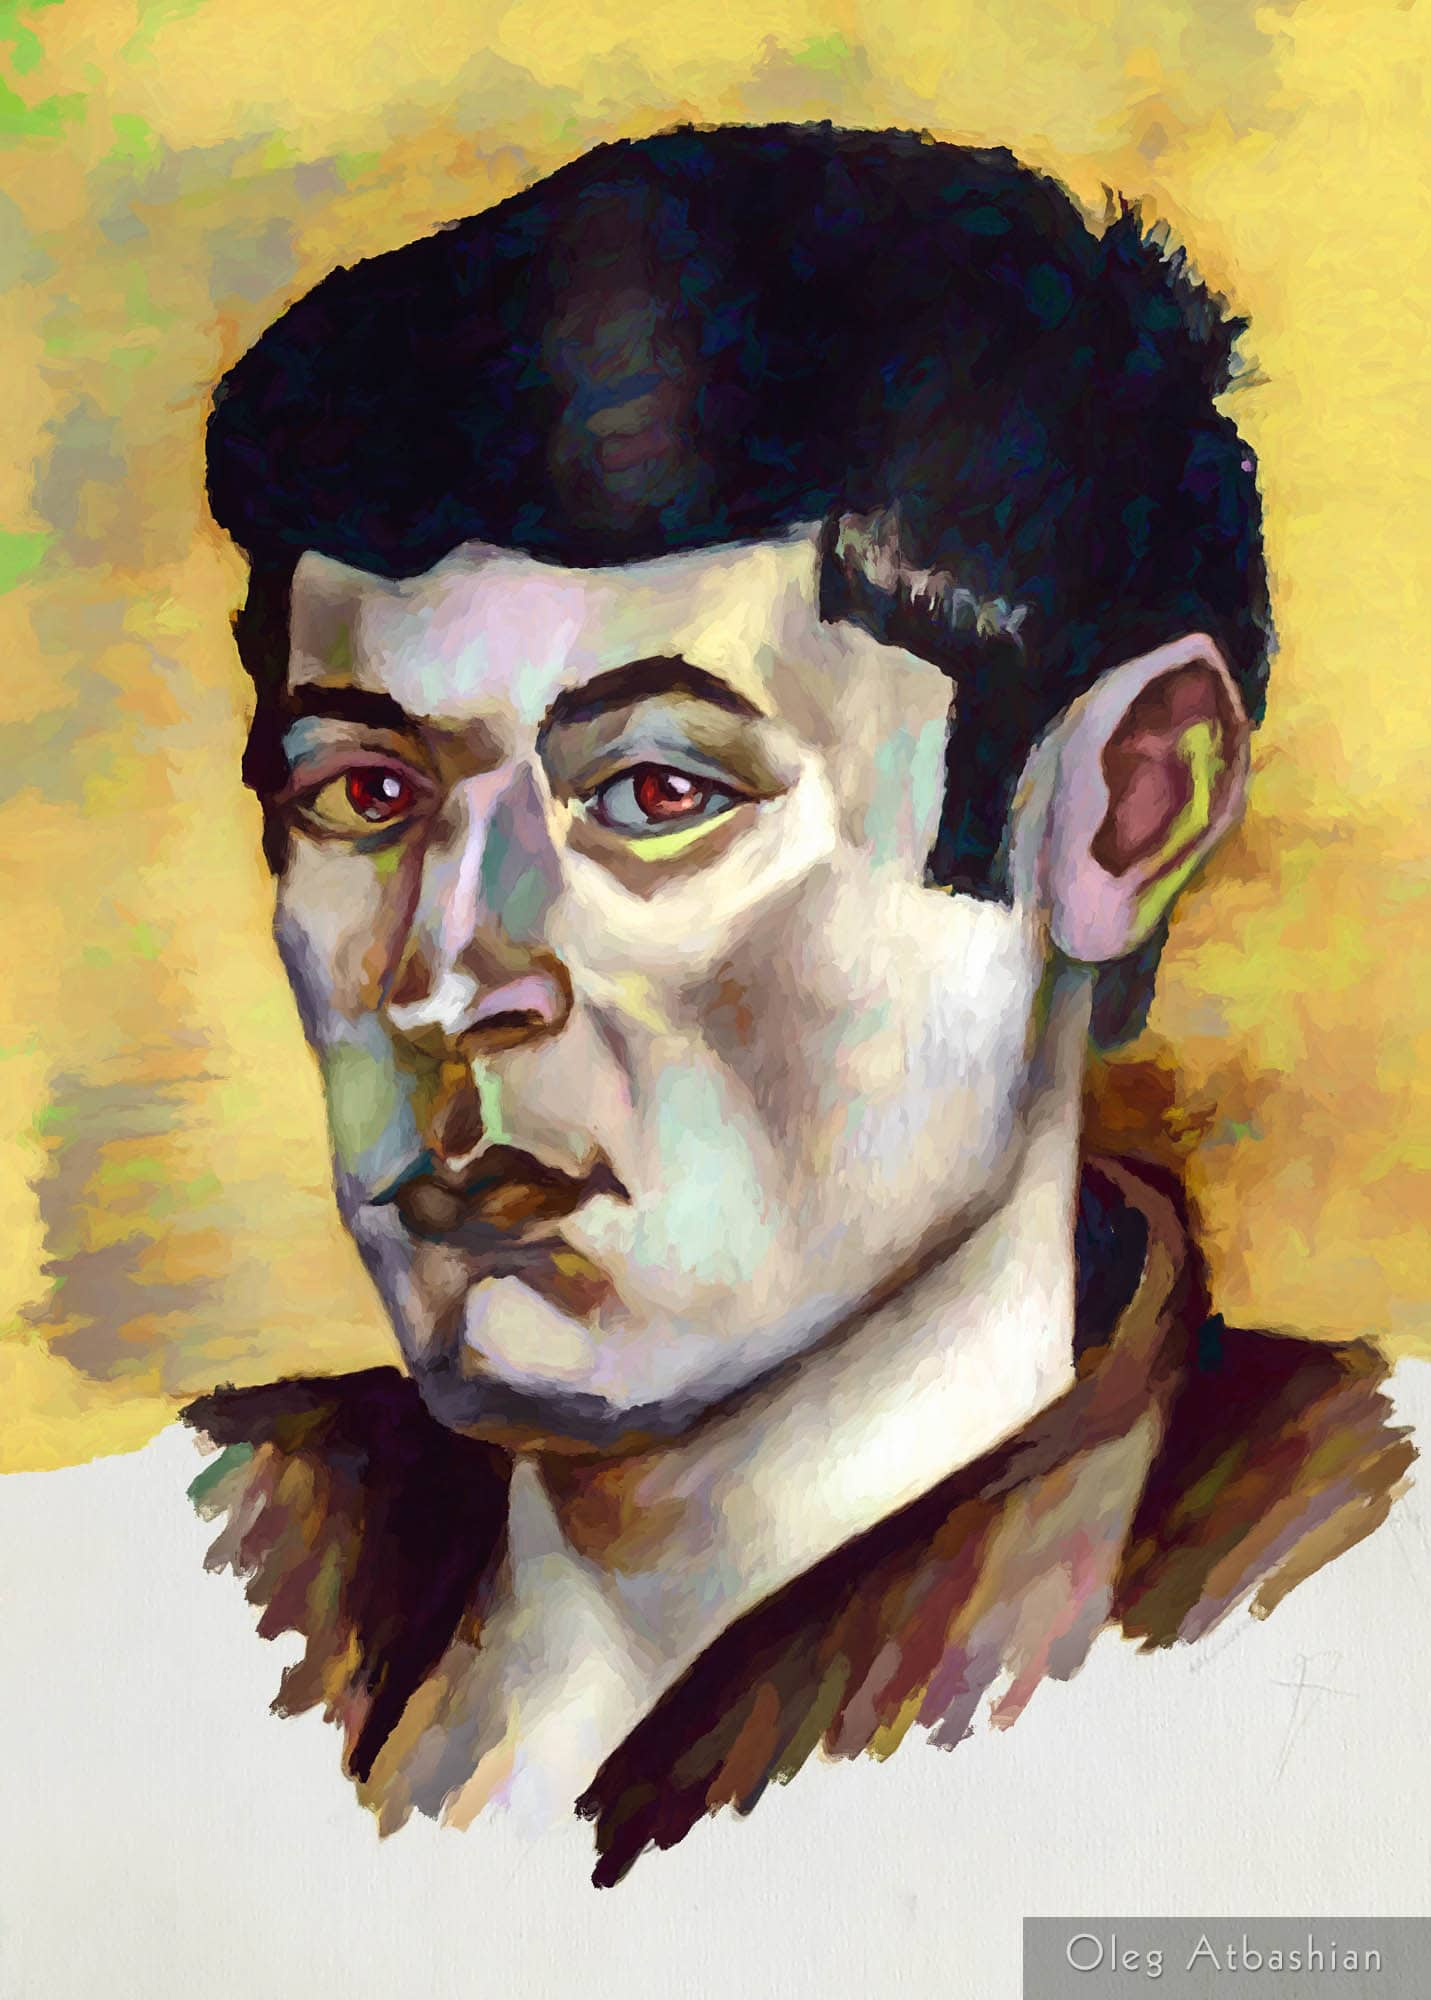 Lezgin Young Man from the Caucasus